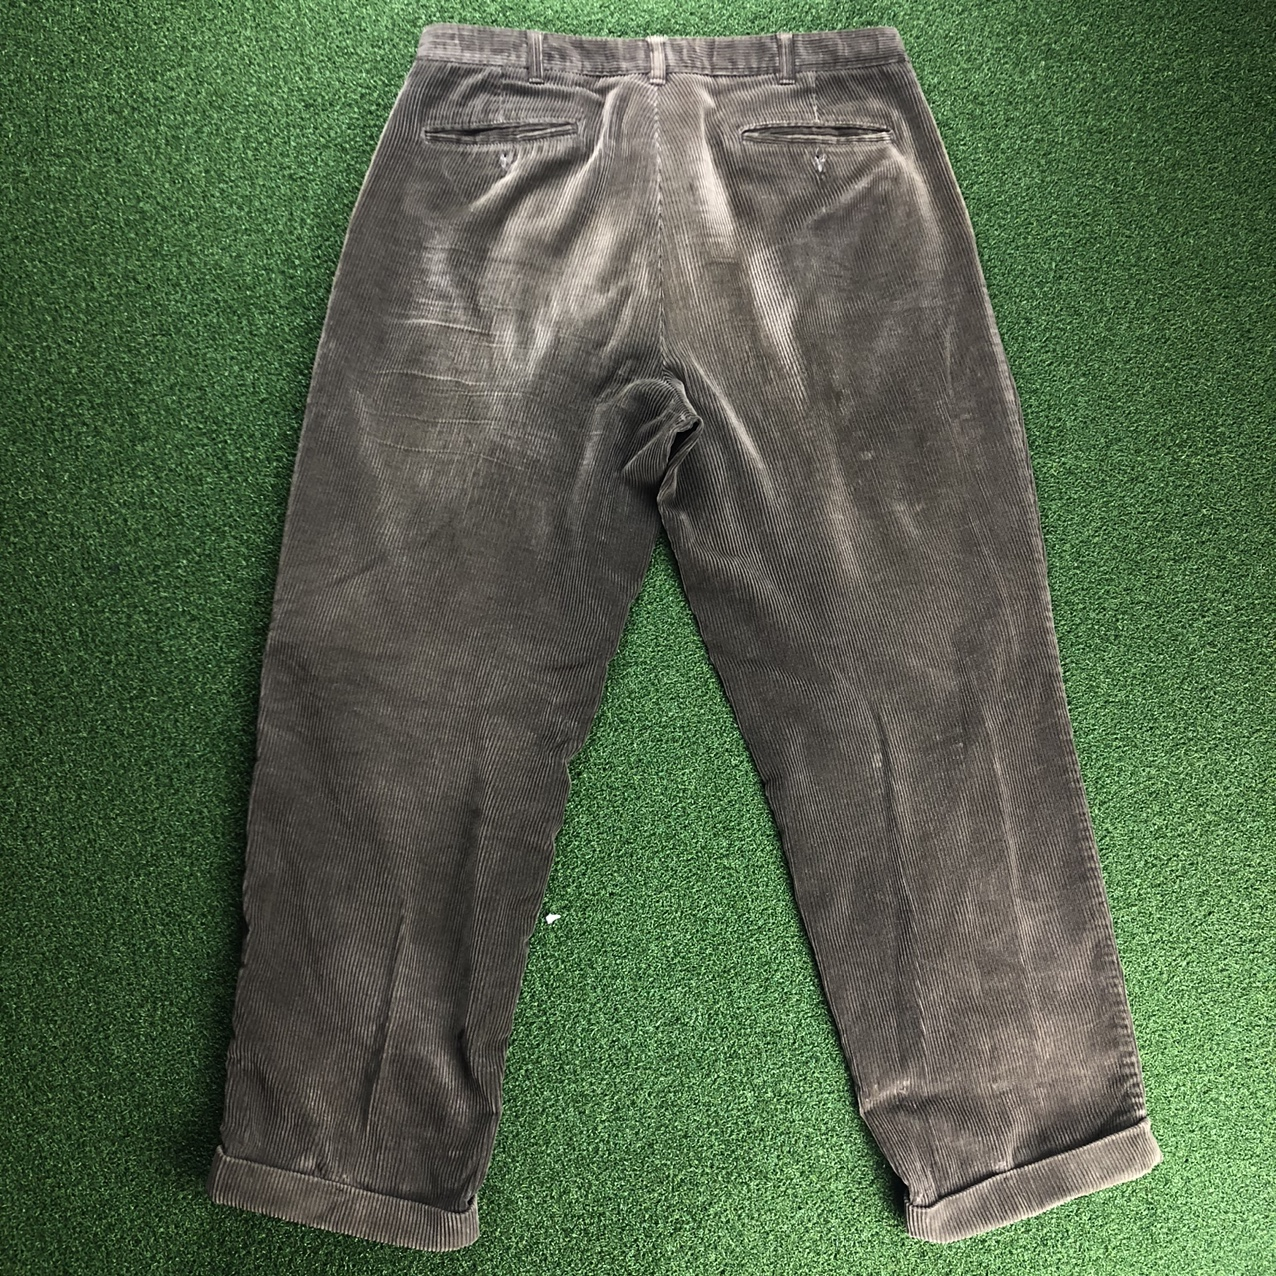 Product Image 1 - Bill Blass Corduroy Pants  Size-36x29 Color-Olive Pre-Loved